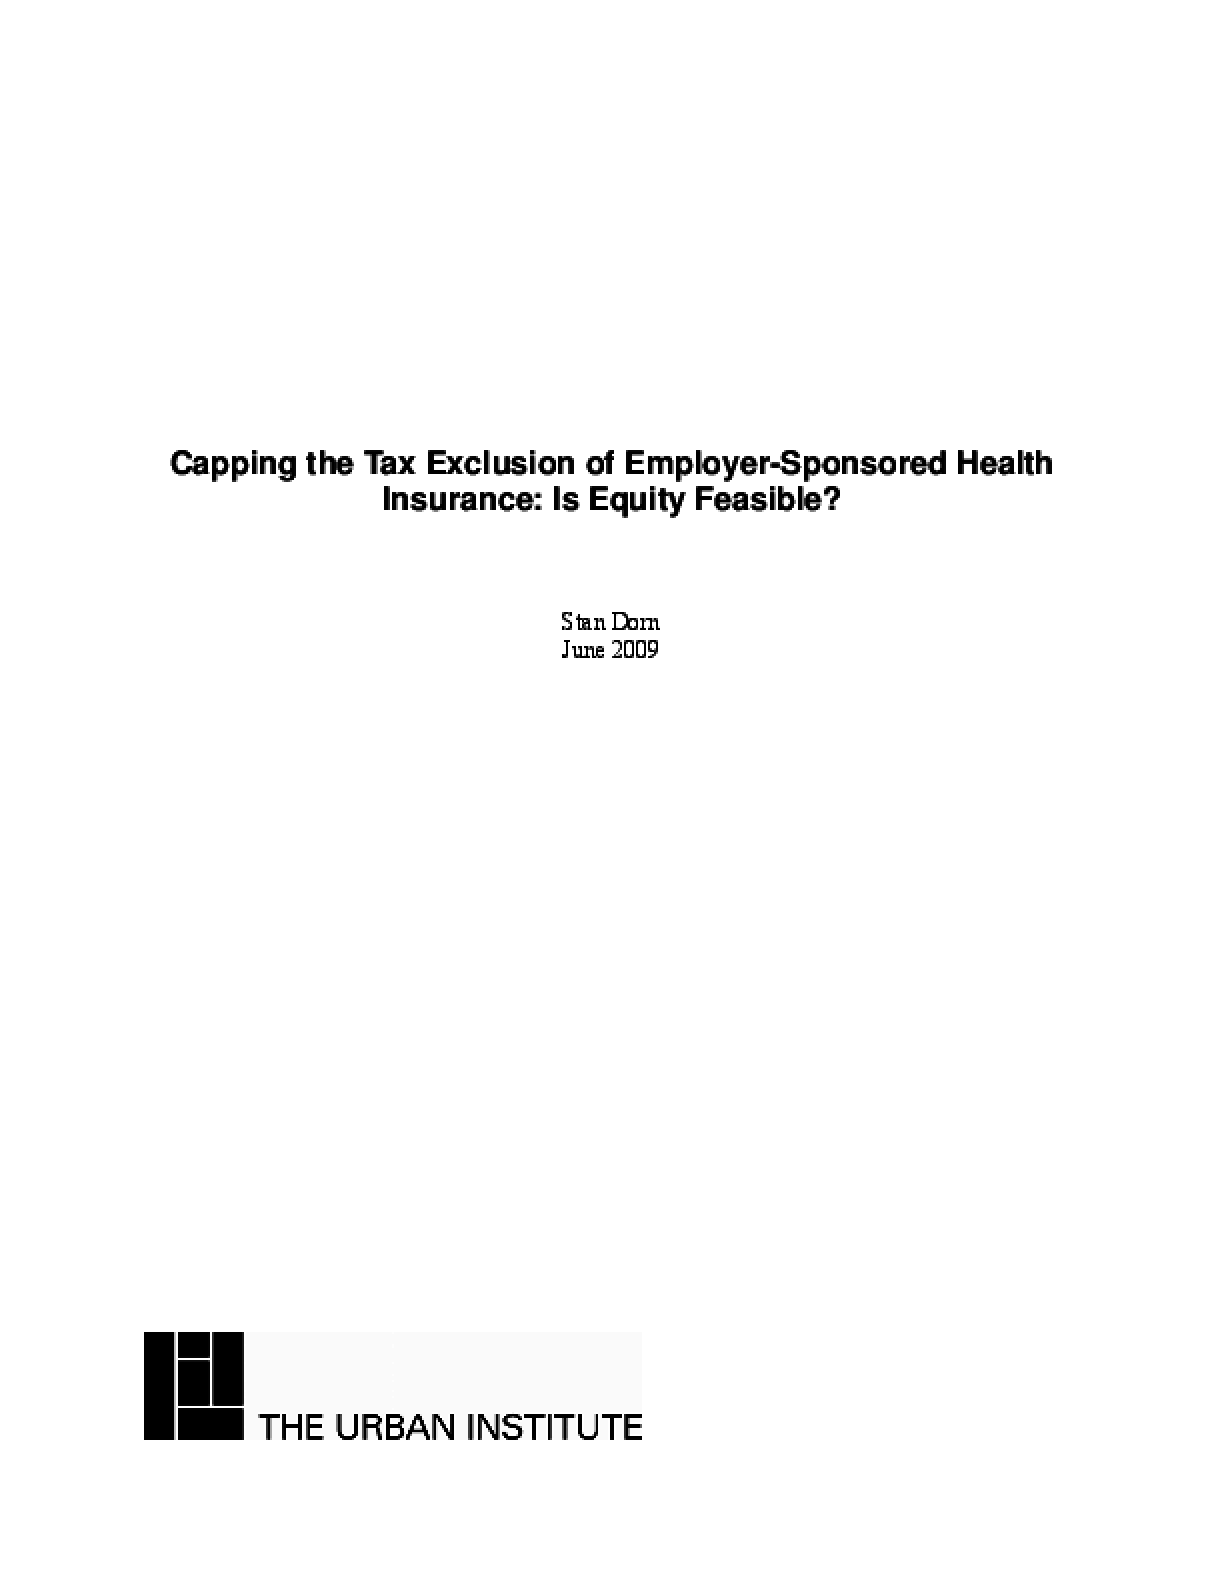 Capping the Tax Exclusion of Employer-Sponsored Health Insurance: Is Equity Feasible?